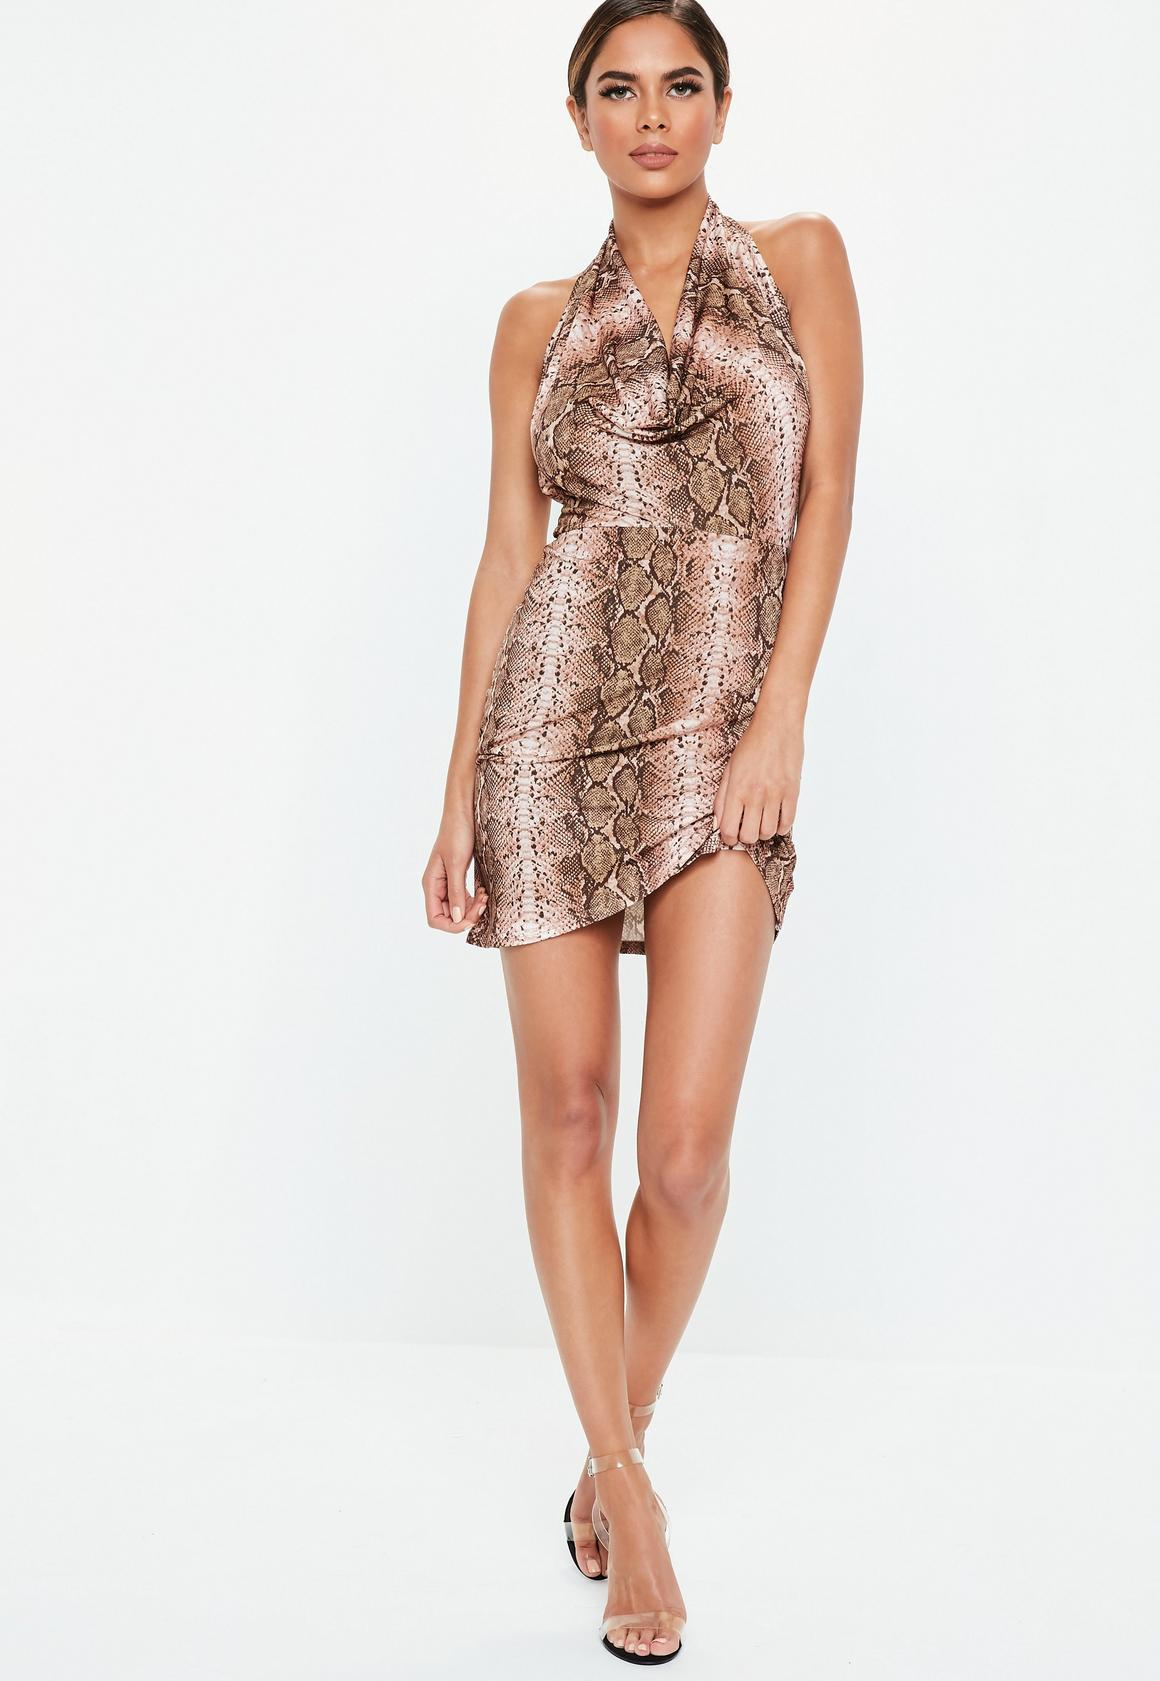 Missguided - robe dos-nu courte marron à imprimé serpent - 2